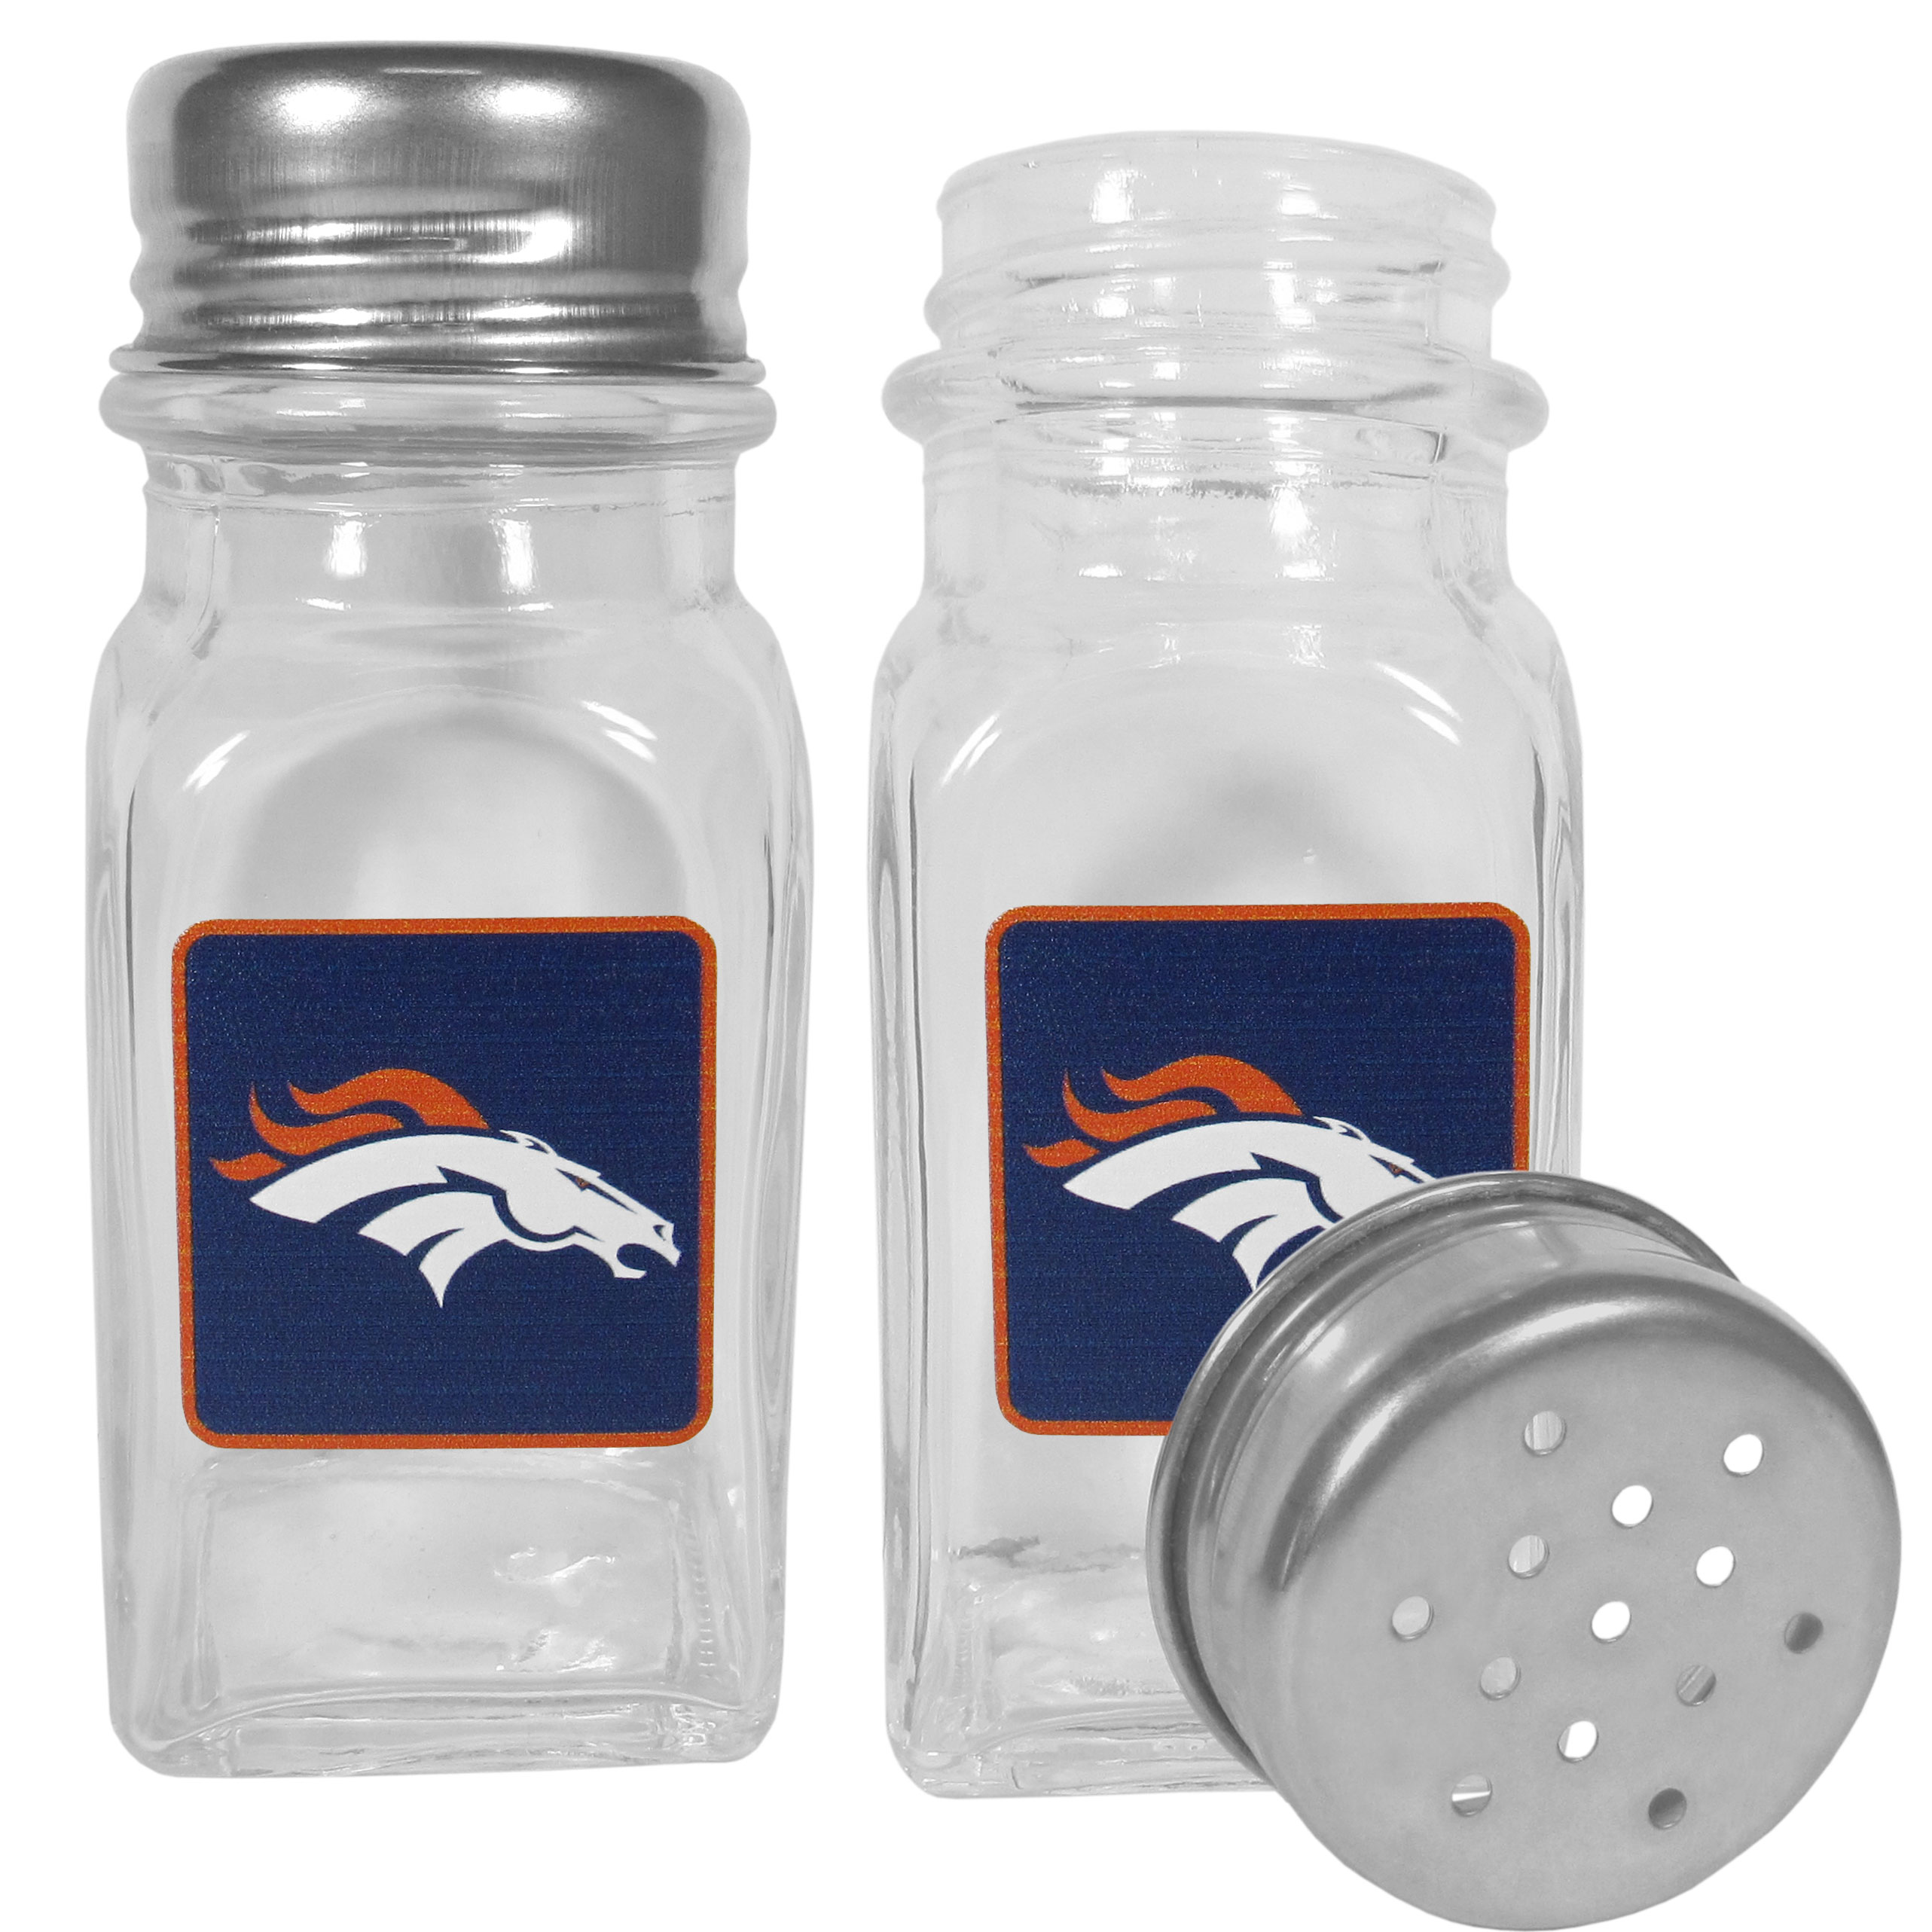 Denver Broncos Graphics Salt and Pepper Shaker - No tailgate party is complete without your Denver Broncos salt & pepper shakers featuring bright team logos. The diner replica salt and pepper shakers are glass with screw top lids. These team shakers are a great grill accessory whether you are barbecuing on the patio, picnicing or having a game day party.